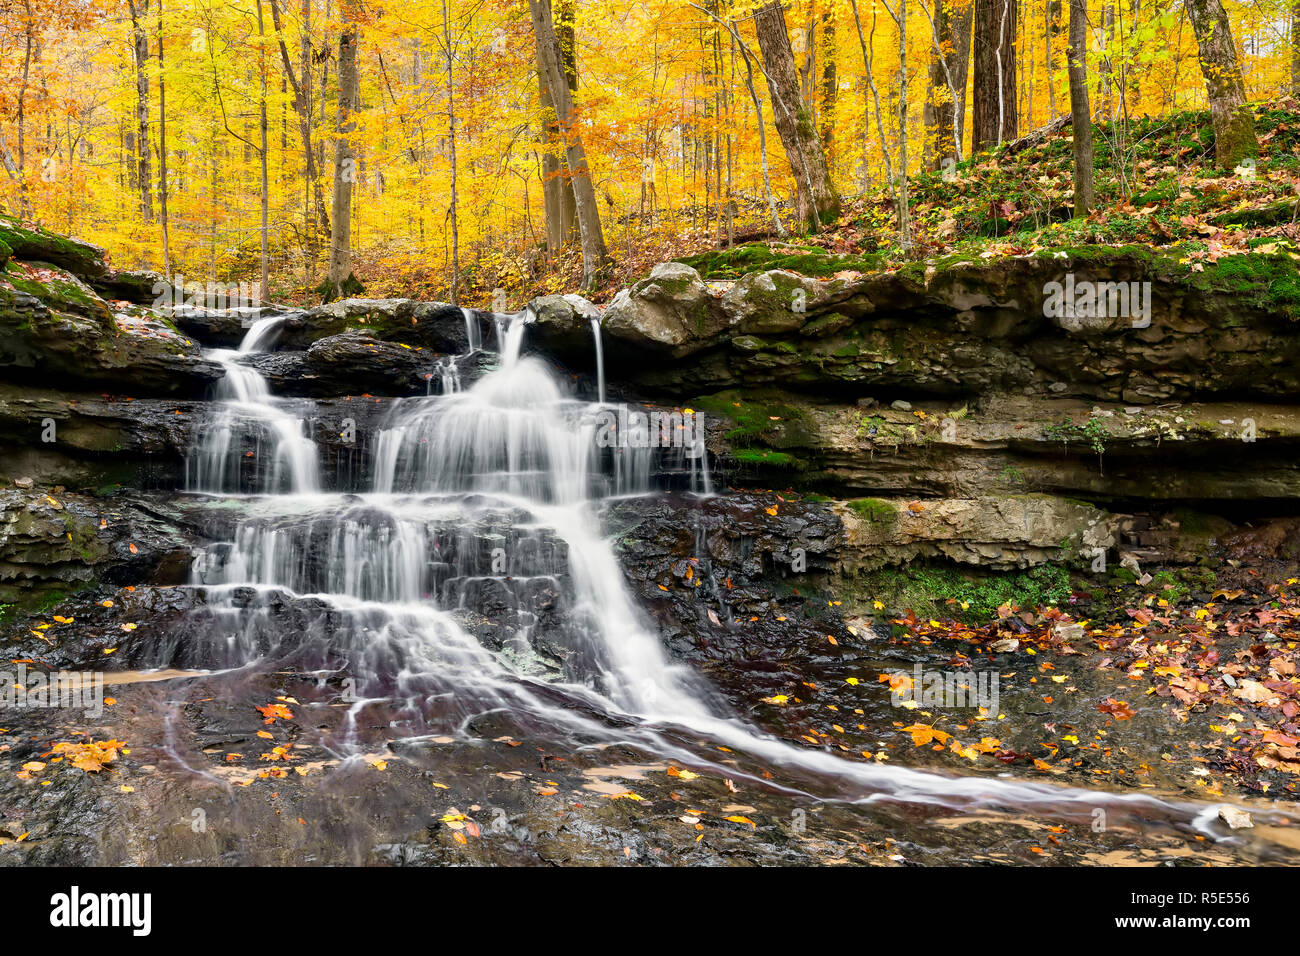 Tailwater Falls, a beautiful little waterfall in Owen County,  Indiana's Lieber State Recreation Area, cascades through a colorful autumn landscape. Stock Photo